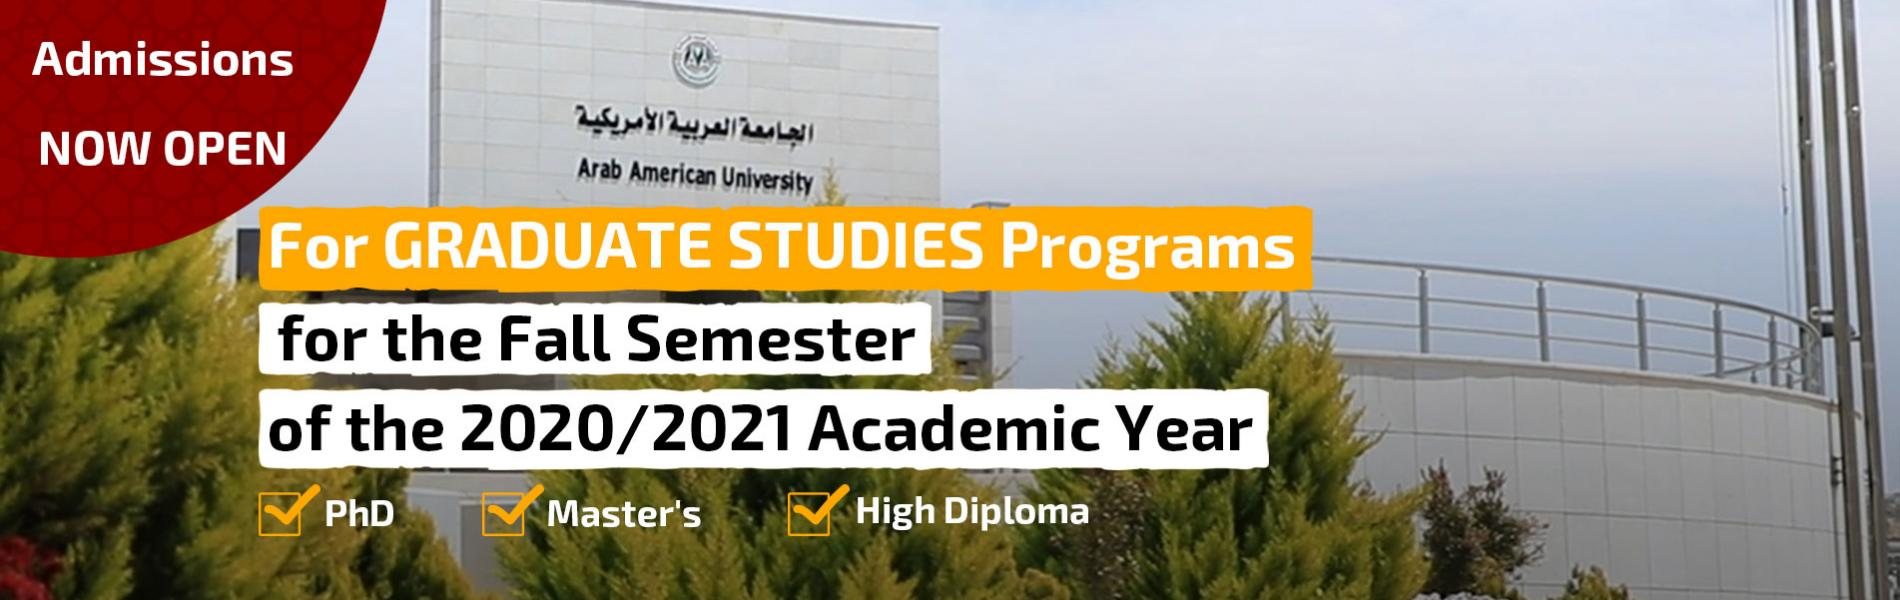 Start Accepting Applications for Admission to the Faculty of Graduate Studies Programs for Fall Semester of Academic Year 2020/2021